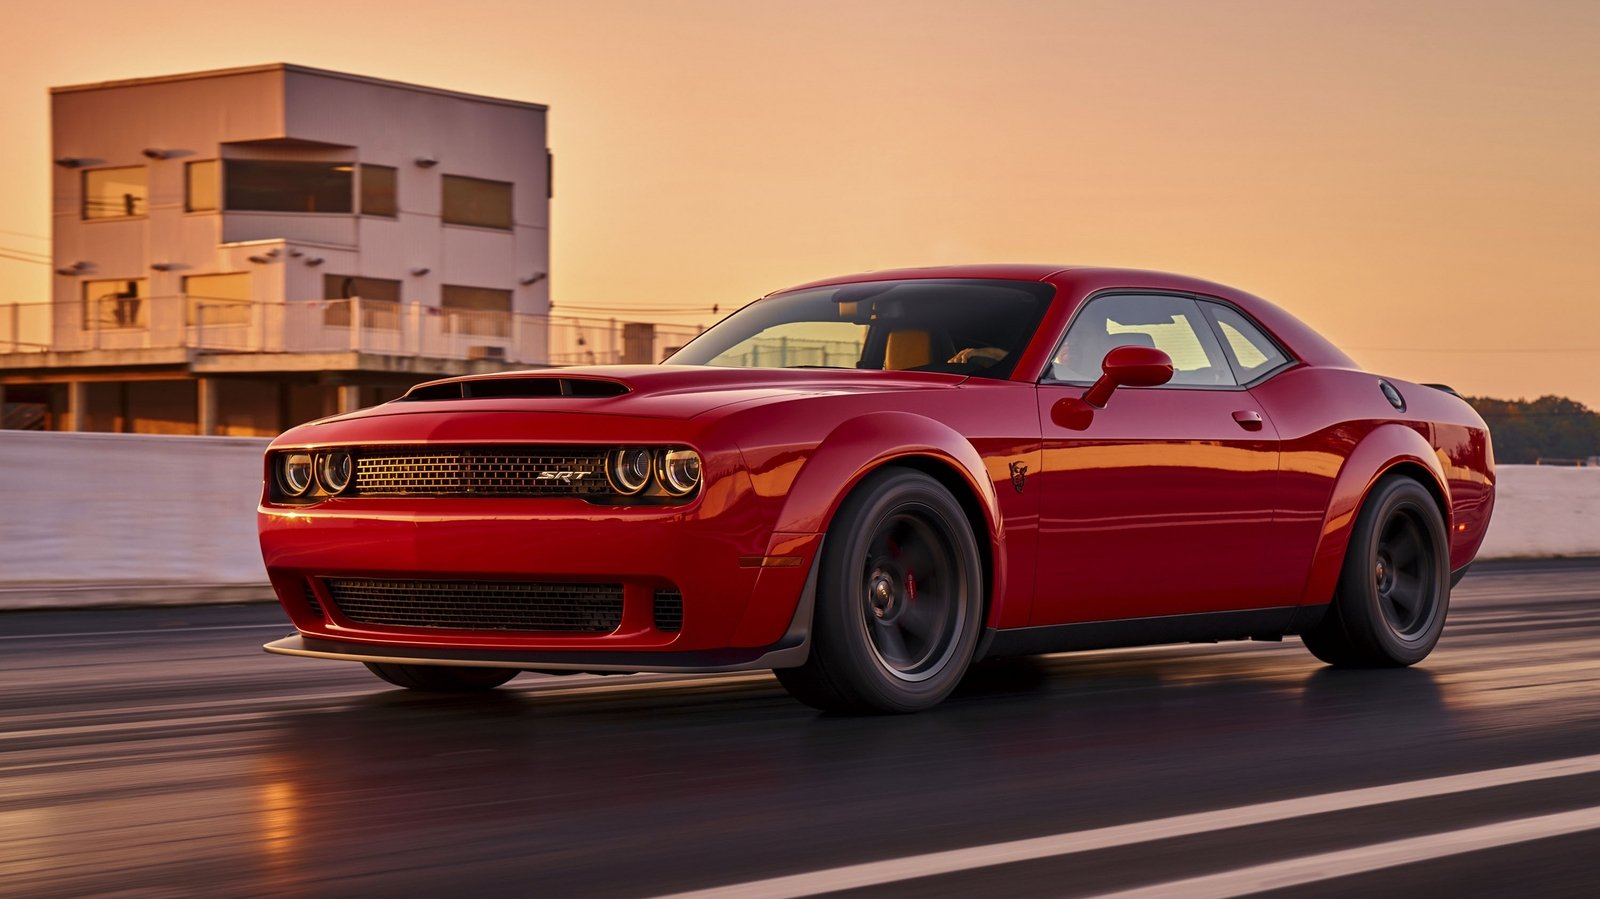 2018 dodge 6 7 specs. fine specs full powertrain spec sheet for challenger srt demon revealed we compare it  to the hellcat and 2018 dodge 6 7 specs